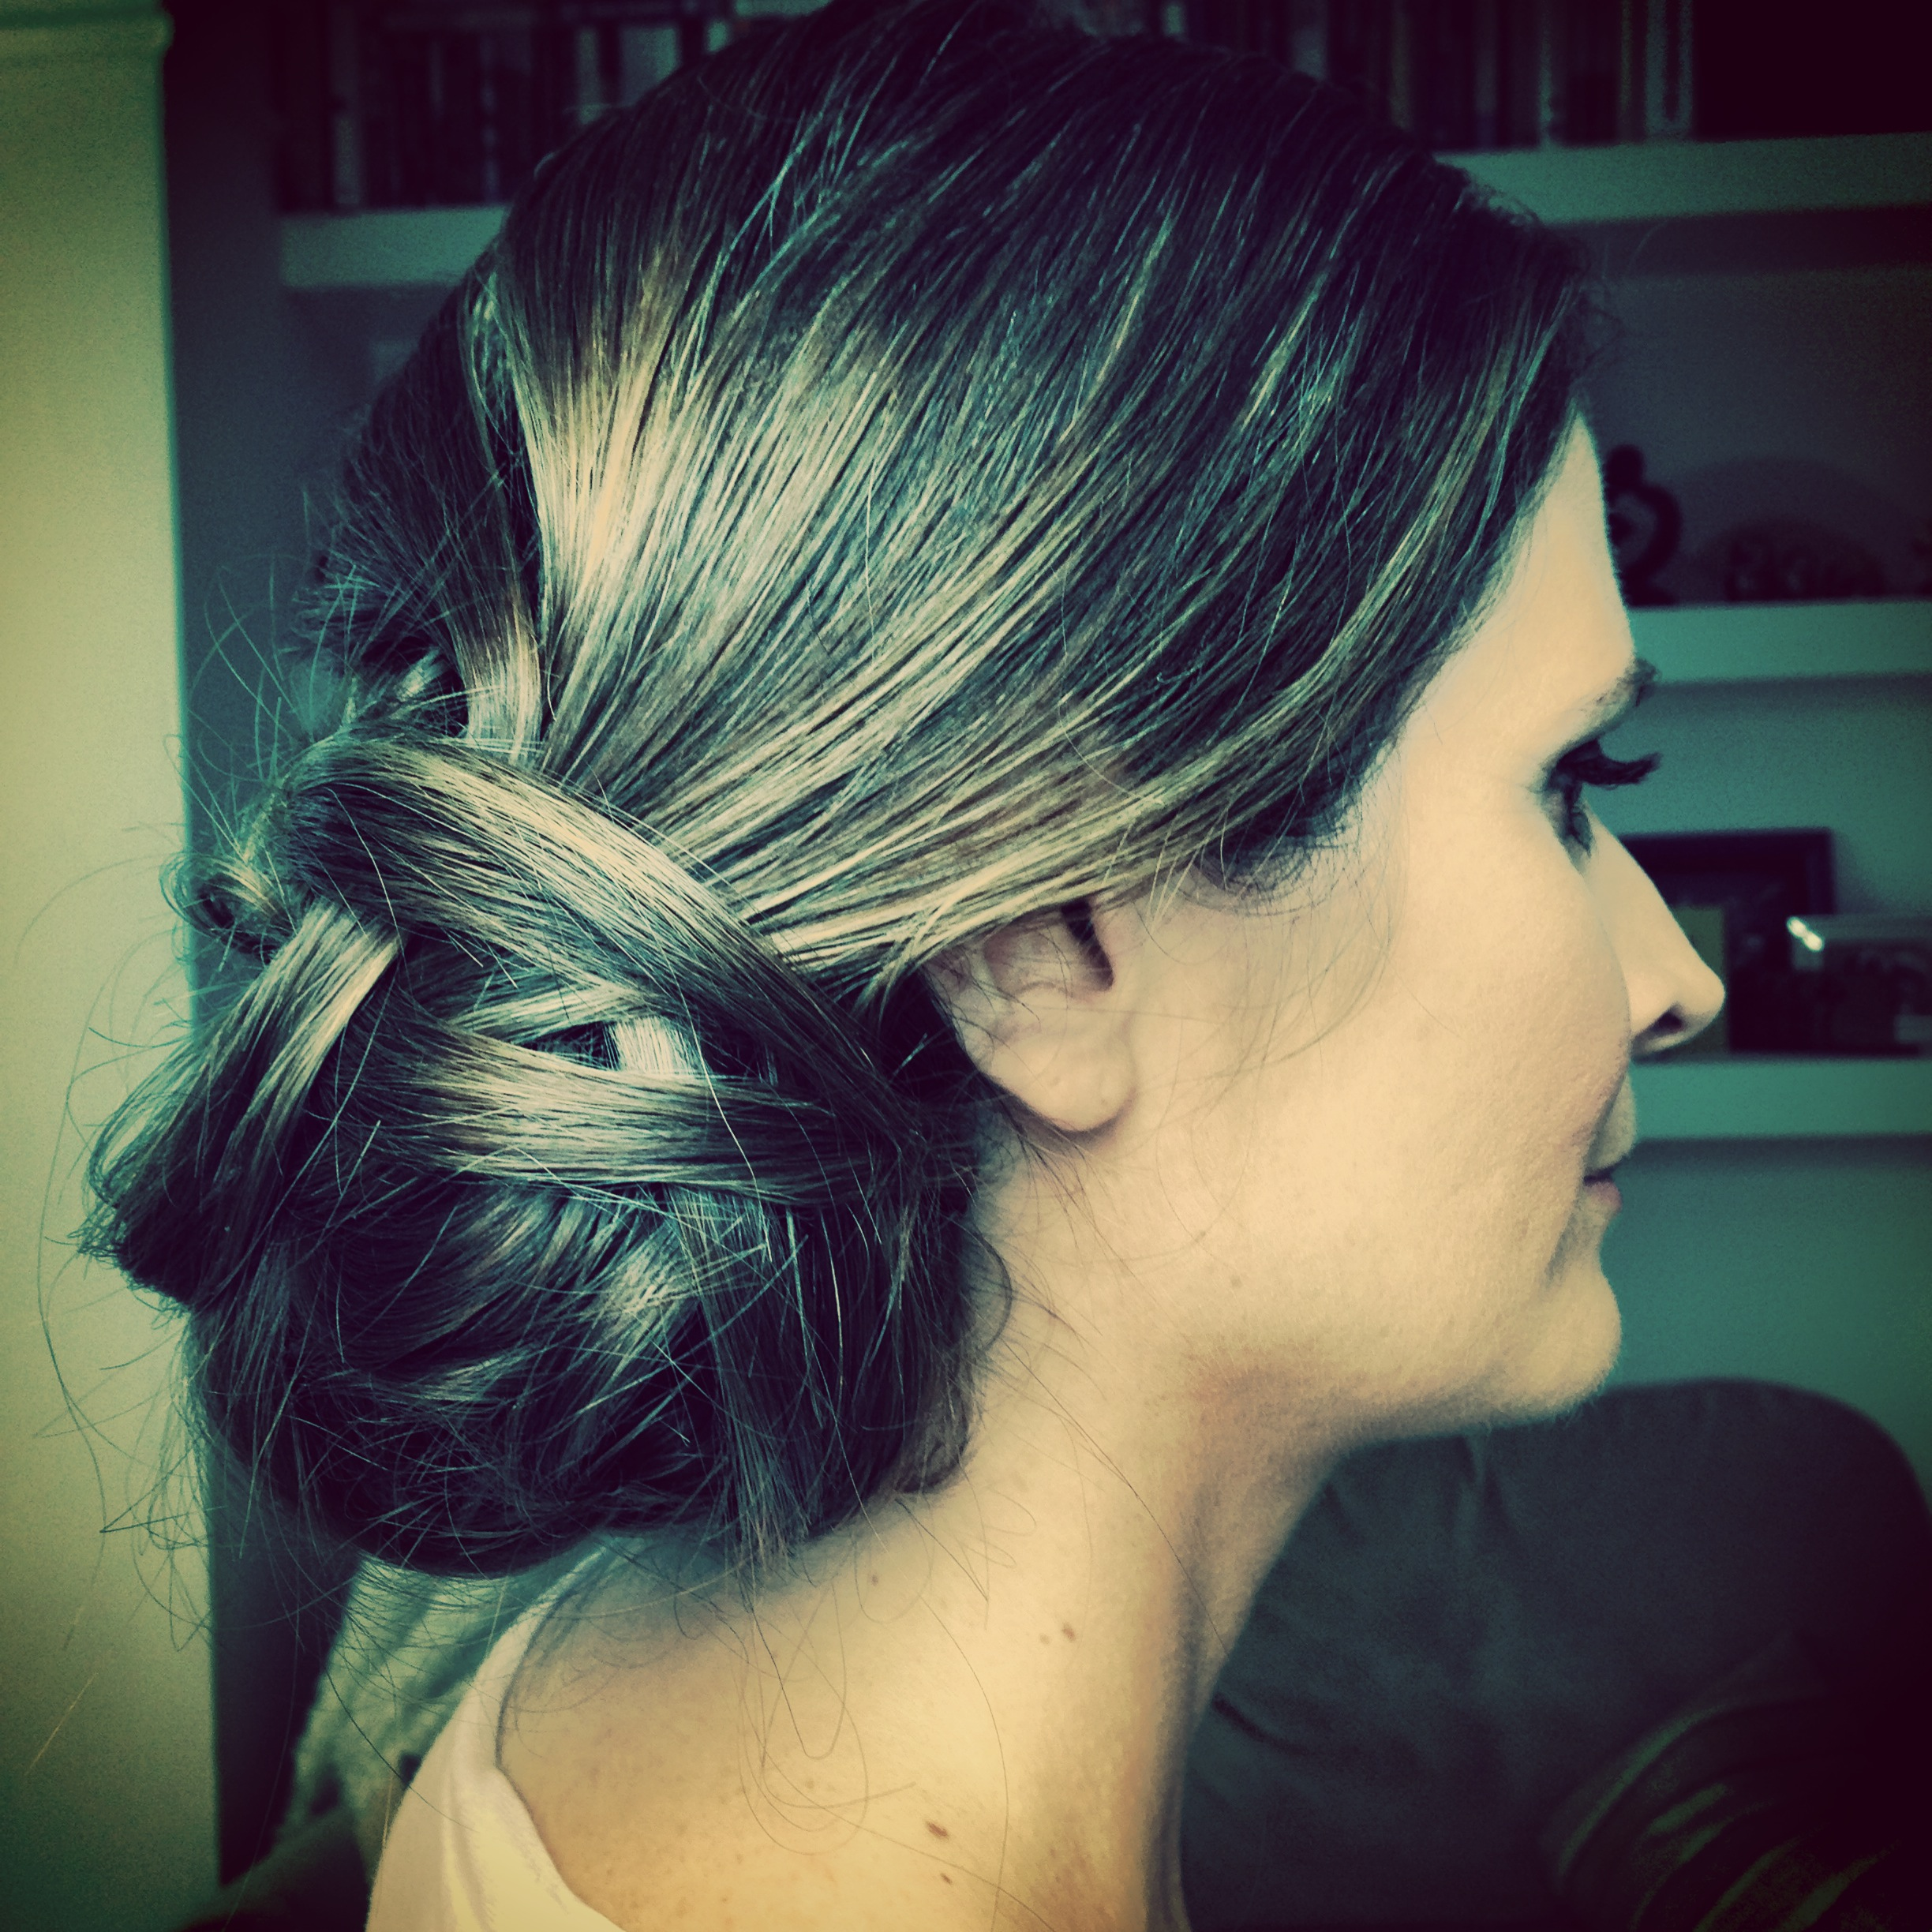 Bridal hair updo, wedding hair style, low chignon, boho, hampshire, london, surrey, berkshire, hair and makeup artist